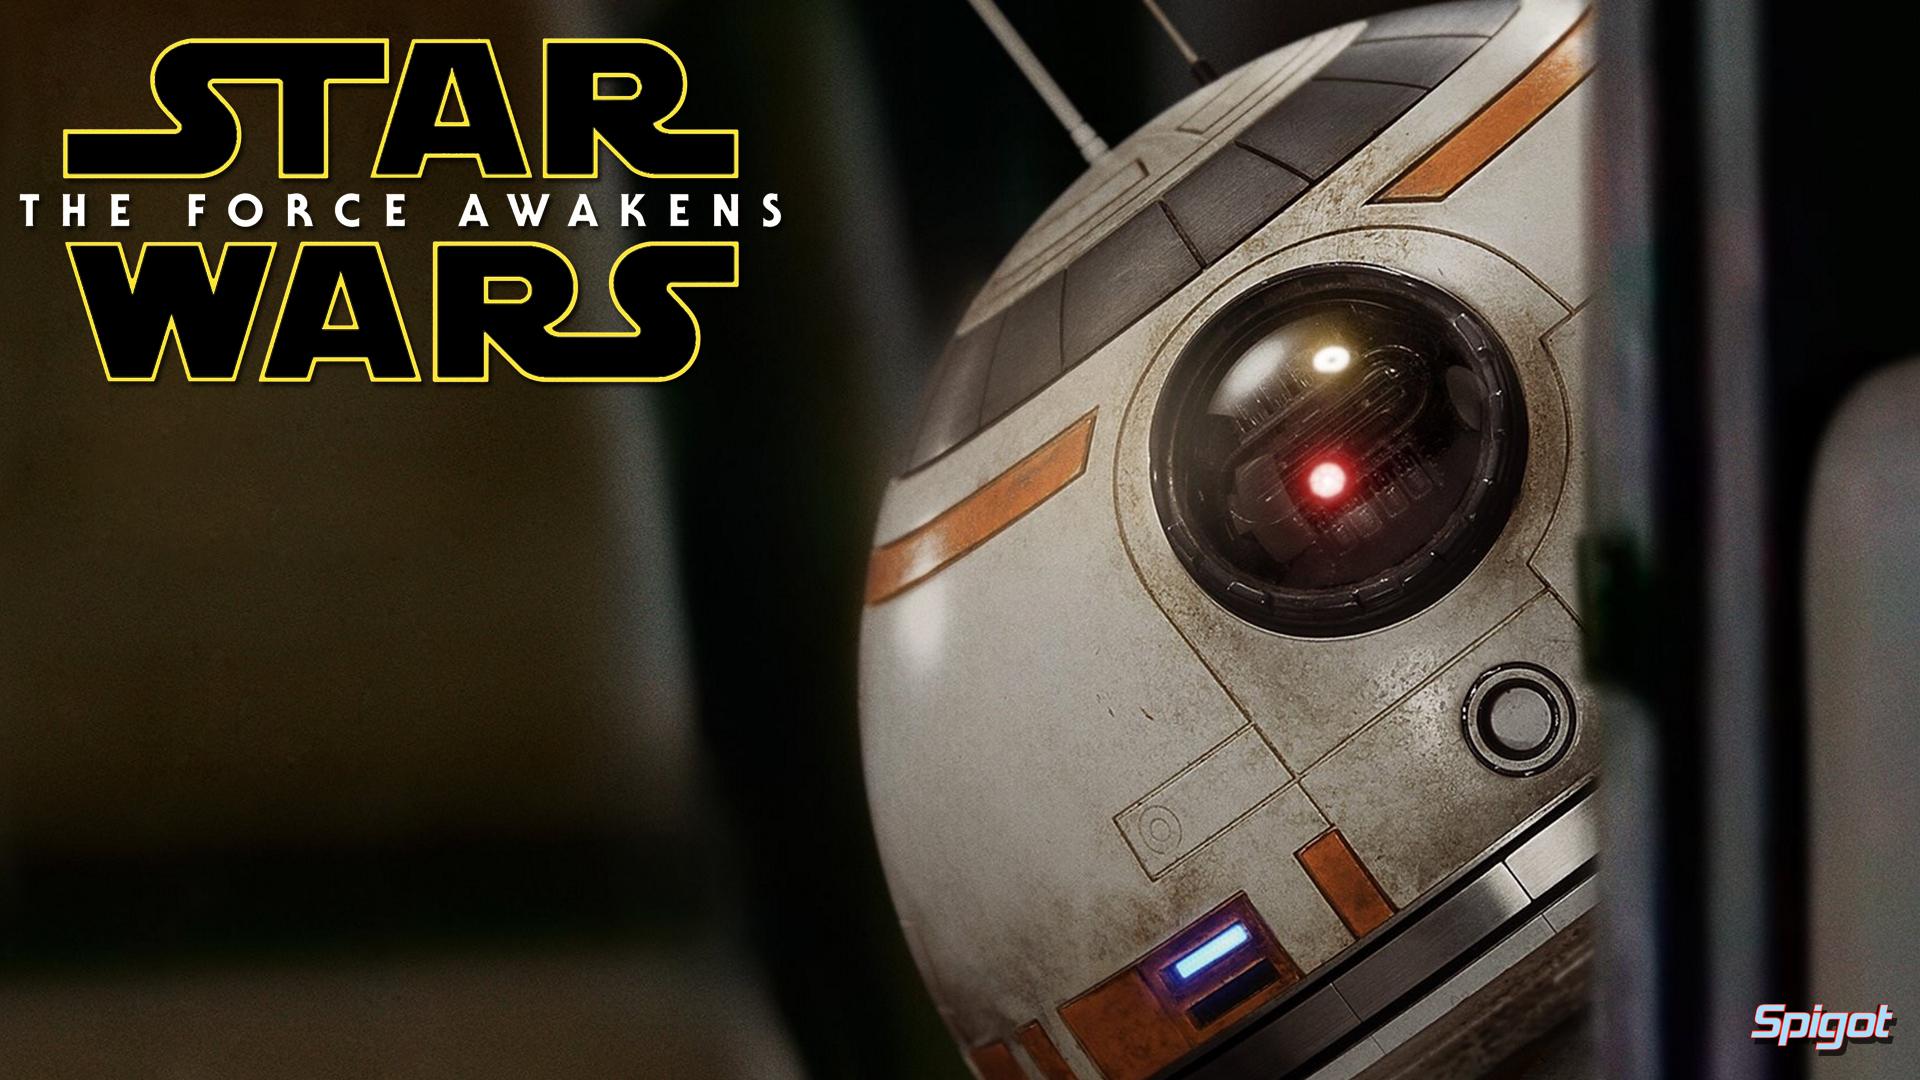 More Star Wars The Force Awakens George Spigot S Blog